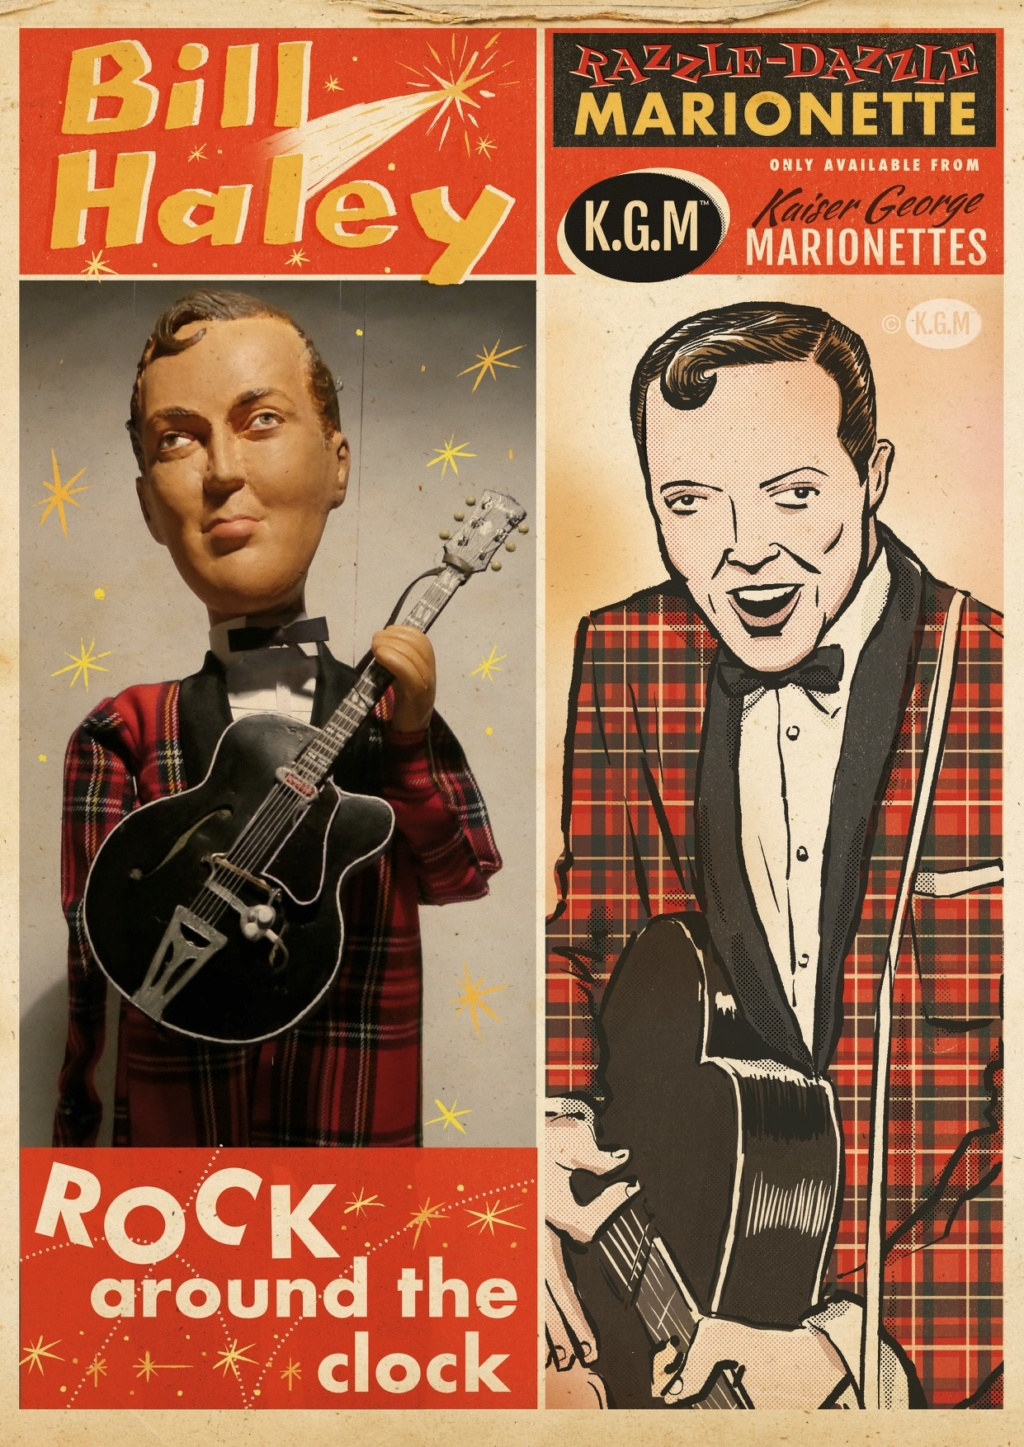 50s Rock 'n' roll legends in marionettes - KGM - Kaiser George Marionettes - 11880110